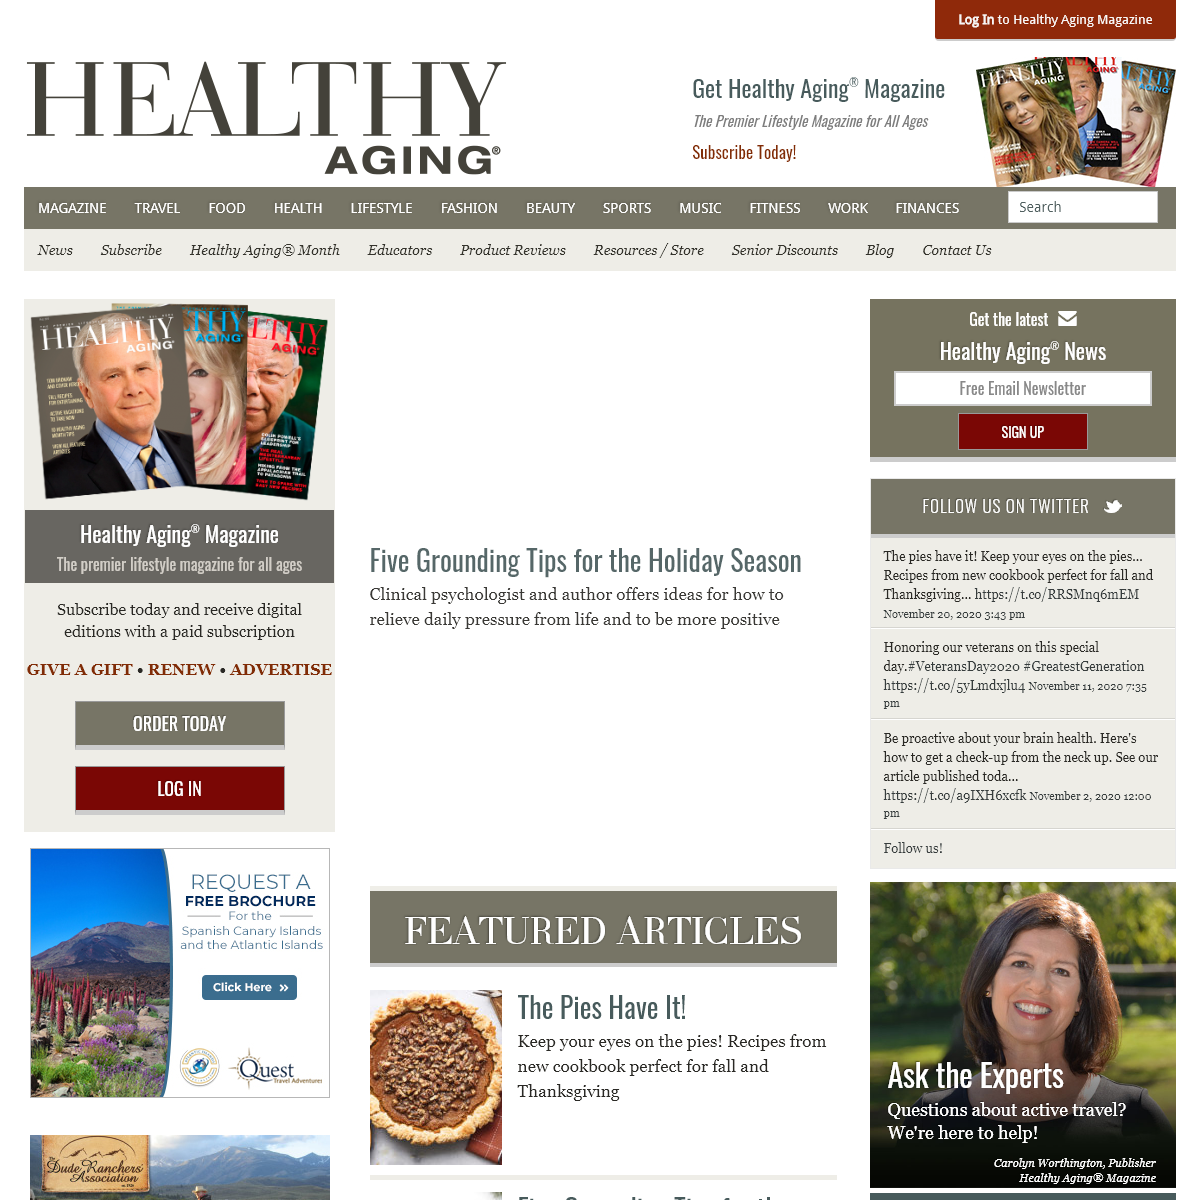 Healthy Aging®. Healthy Aging is The Premier Lifestyle Website for All Ages